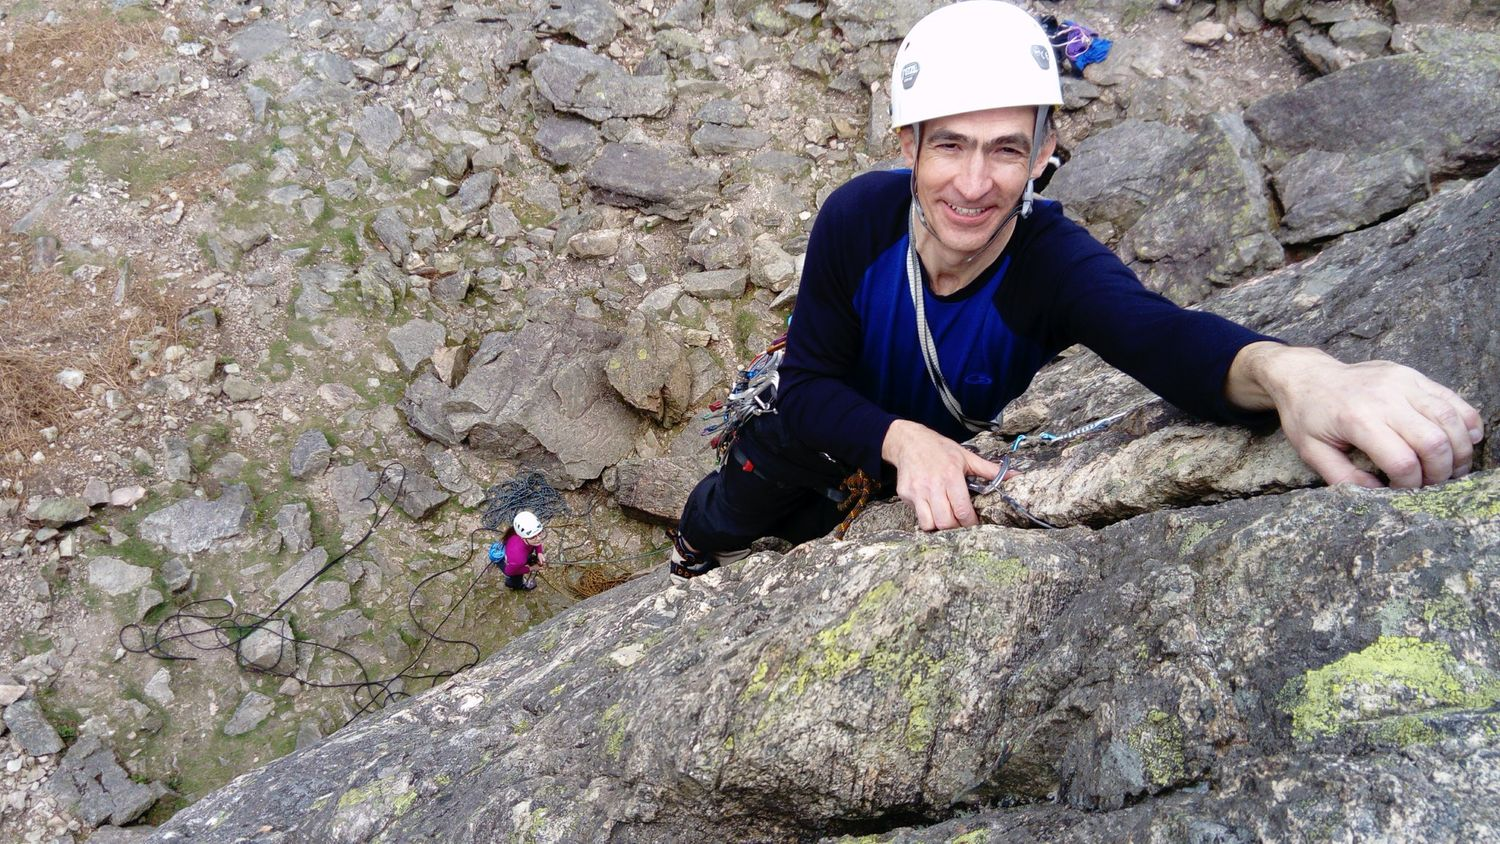 Leading a singlei pitch climb in the lake district - chris ensoll mountain guide